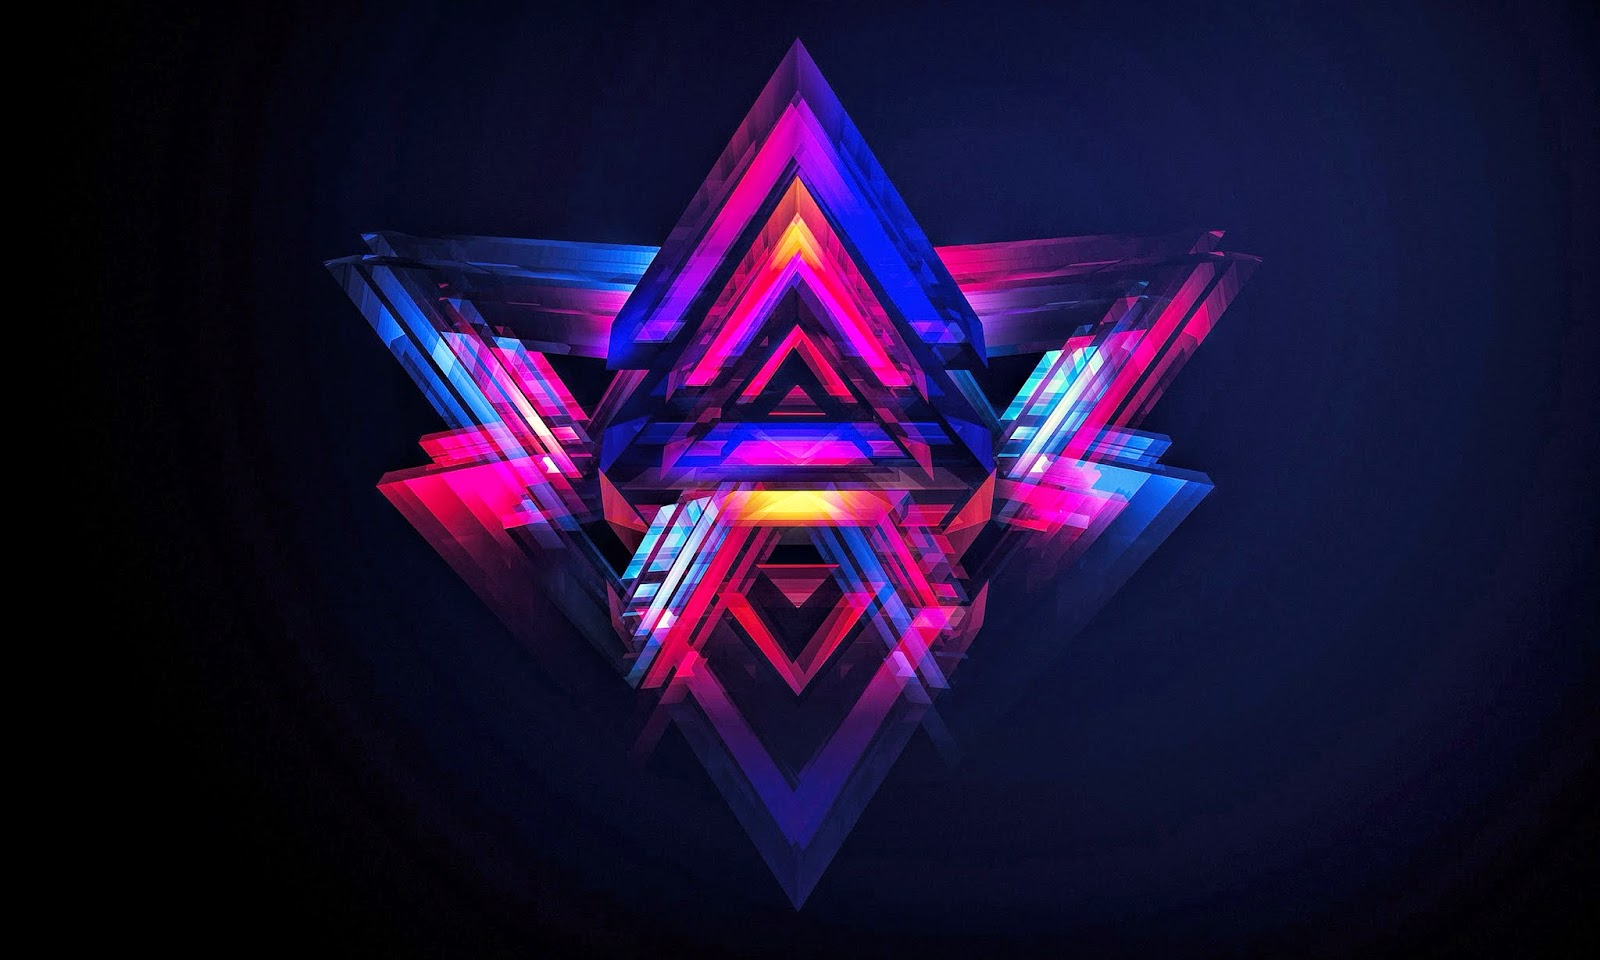 triangle abstract wallpapers hd - photo #5